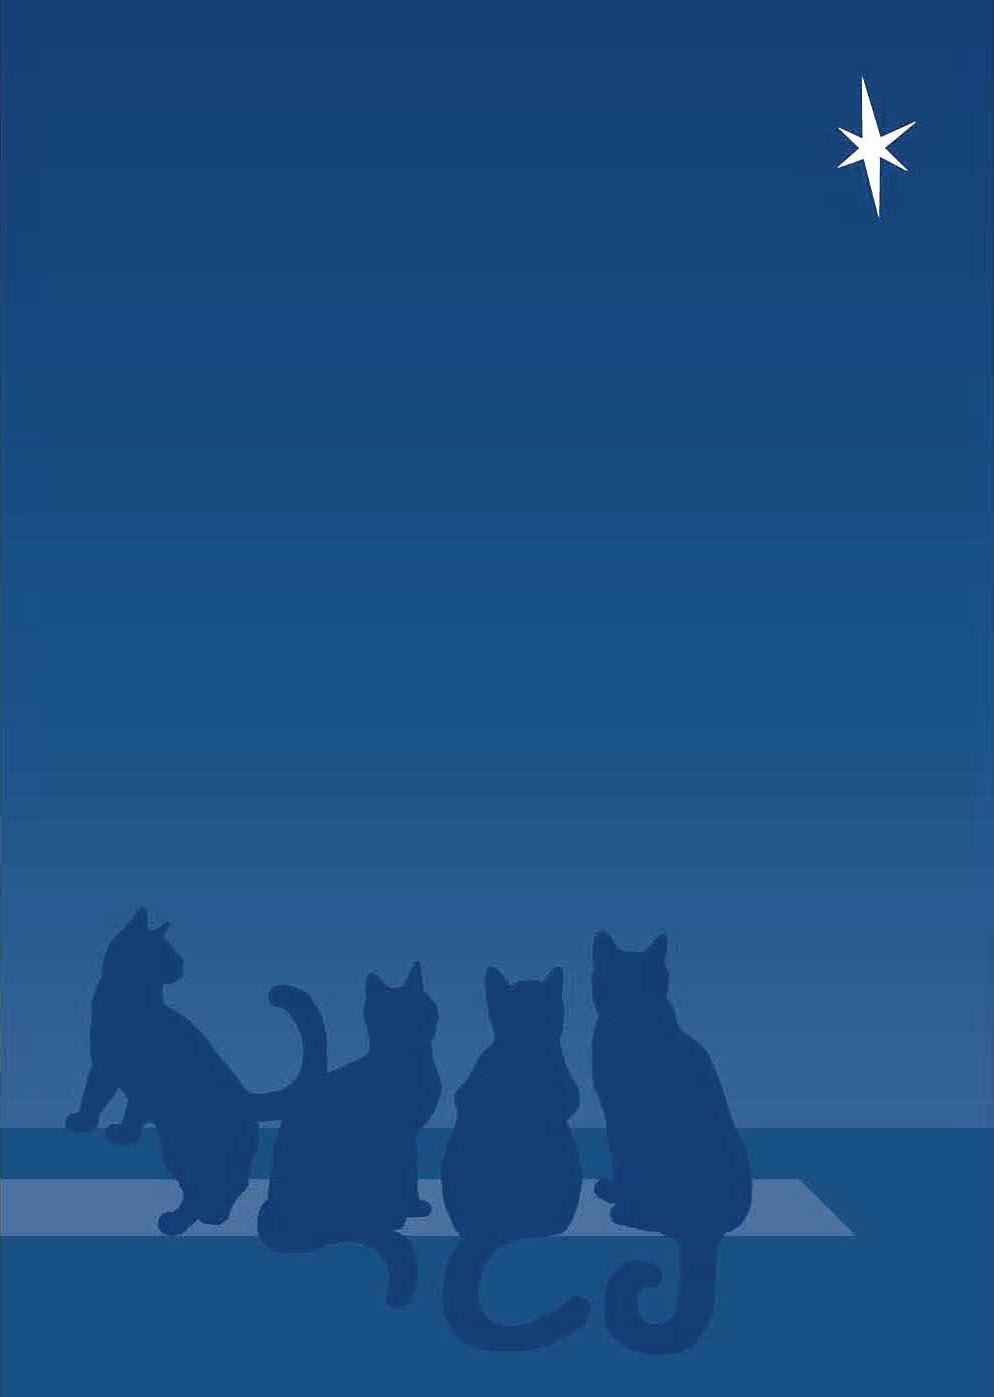 holiday card featuring kittens looking at star